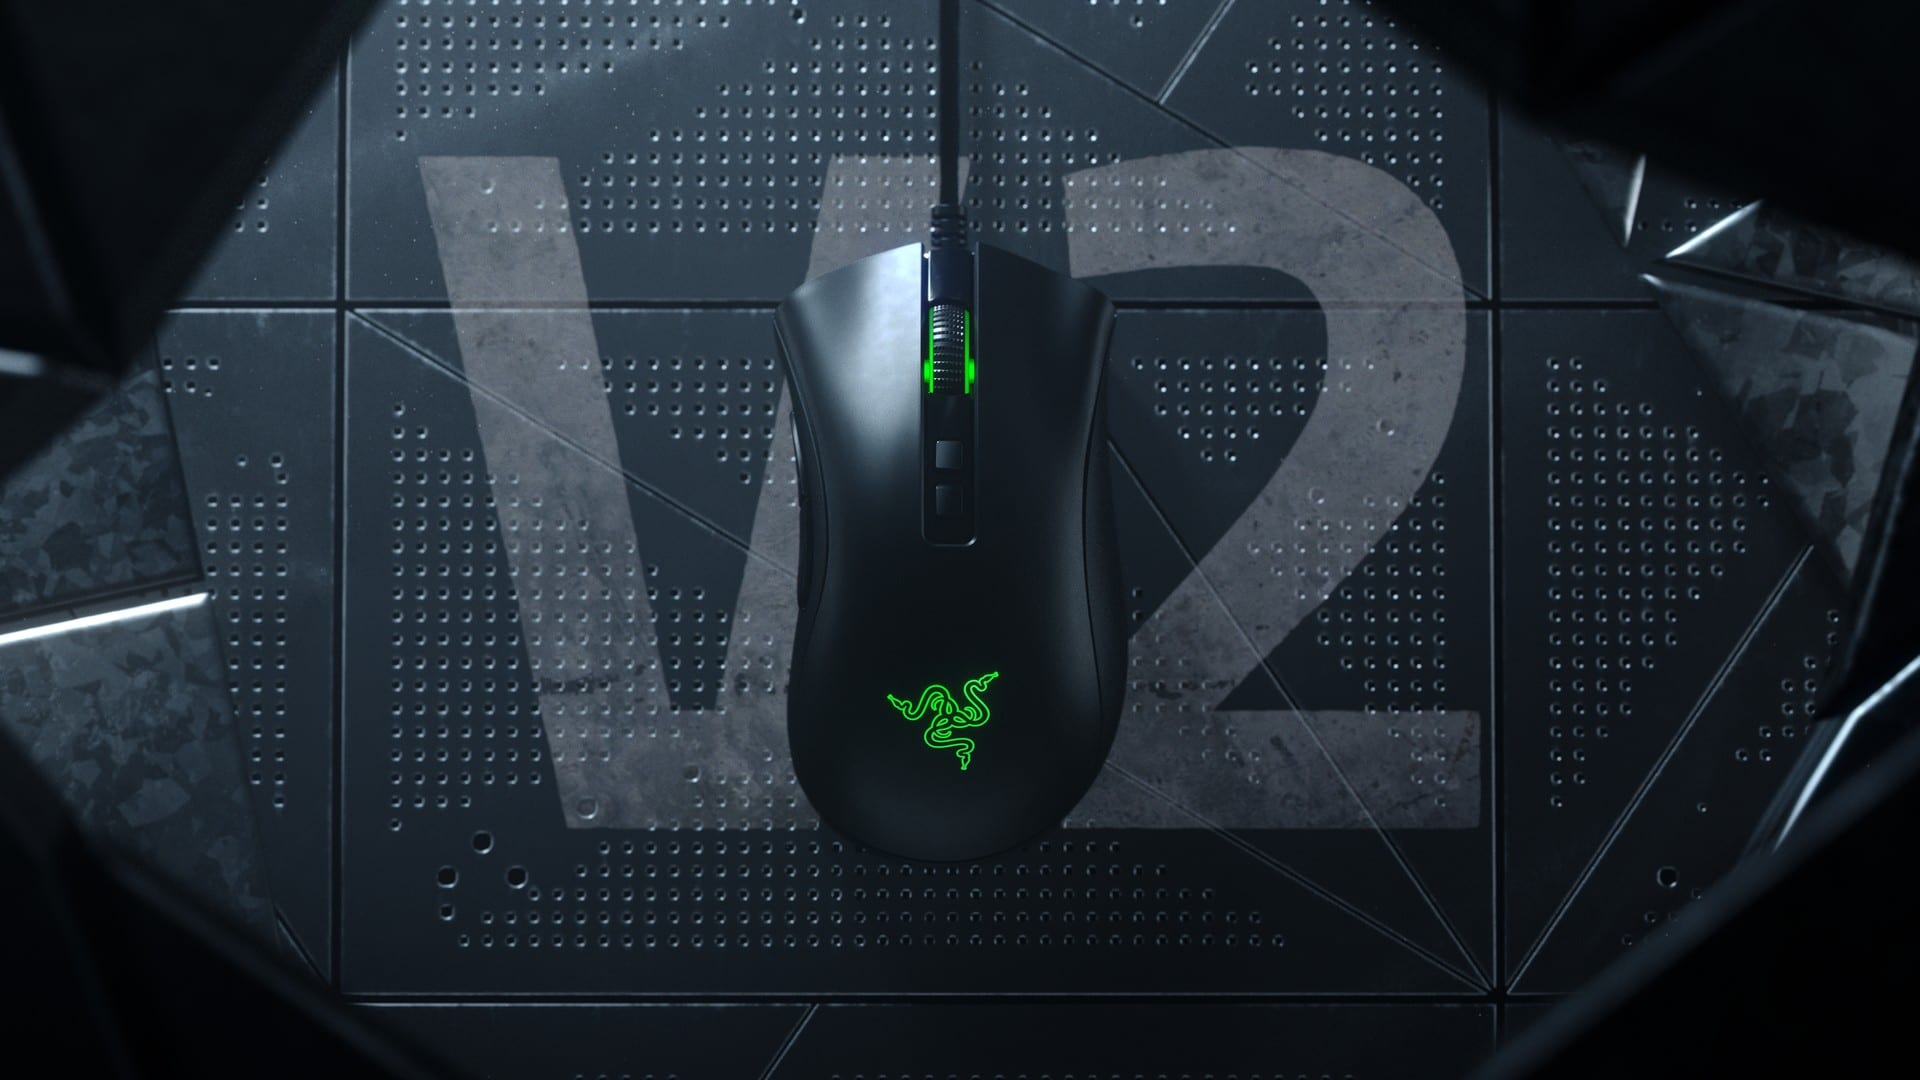 Razer Announces The DeathAdder V2 and Basilisk V2